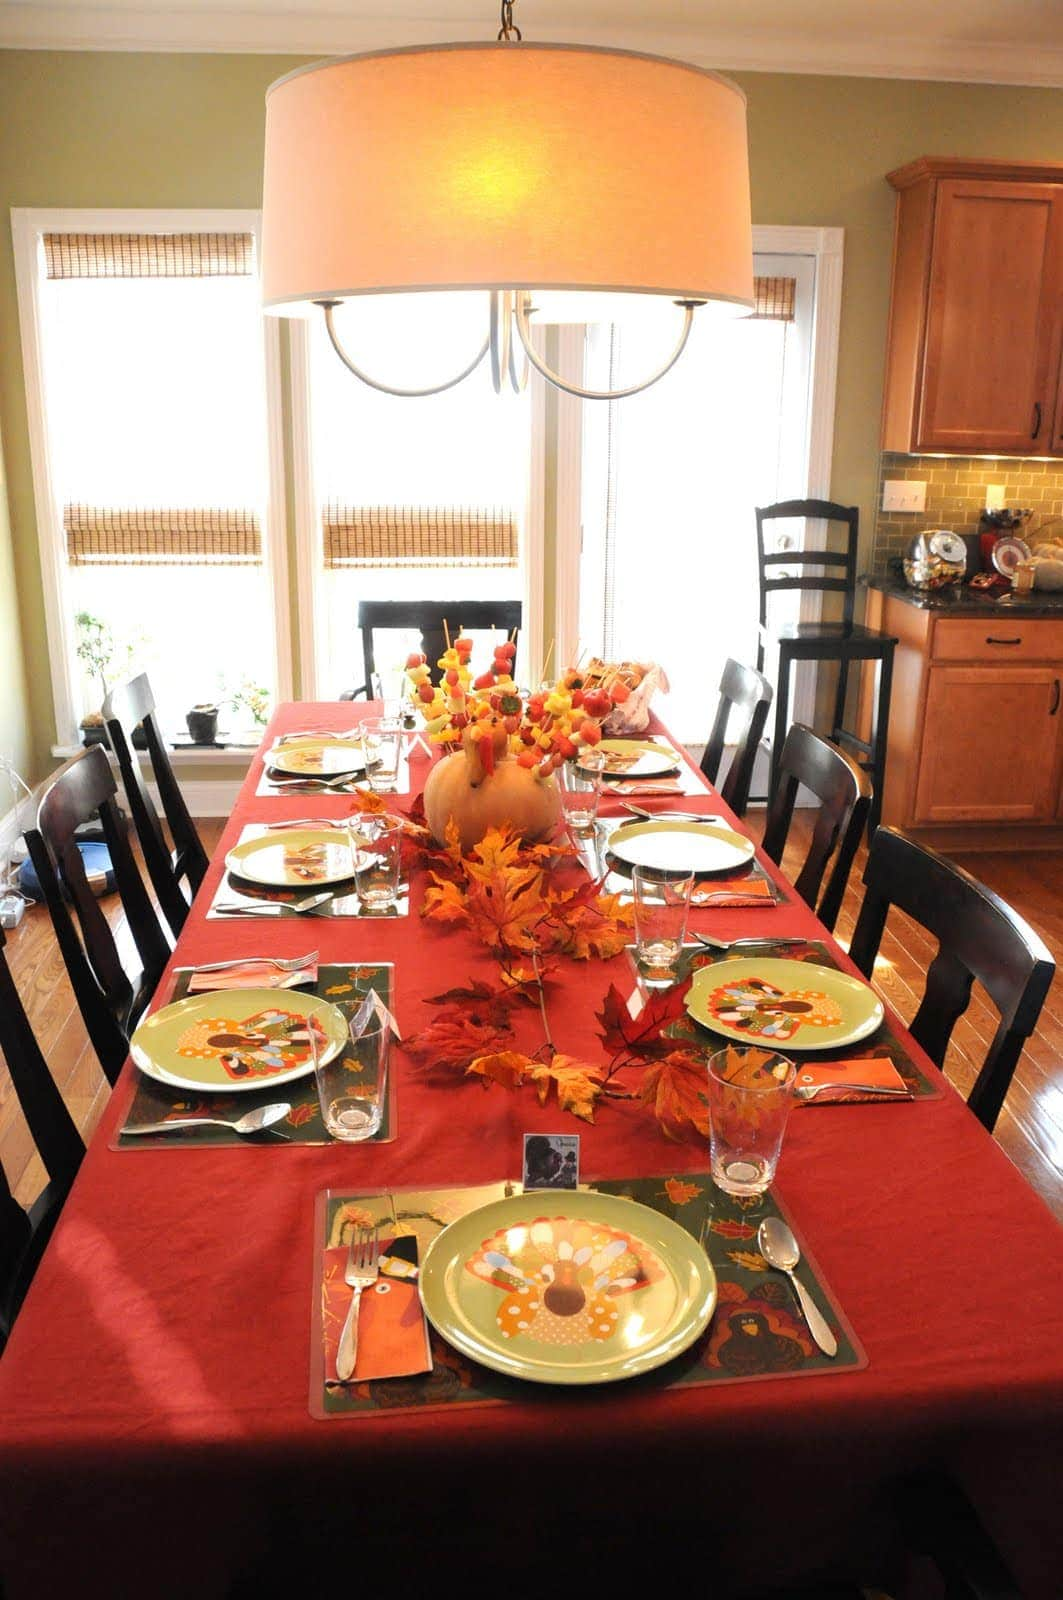 Thanksgiving decor the polkadot chair Fall decorating ideas for dinner party